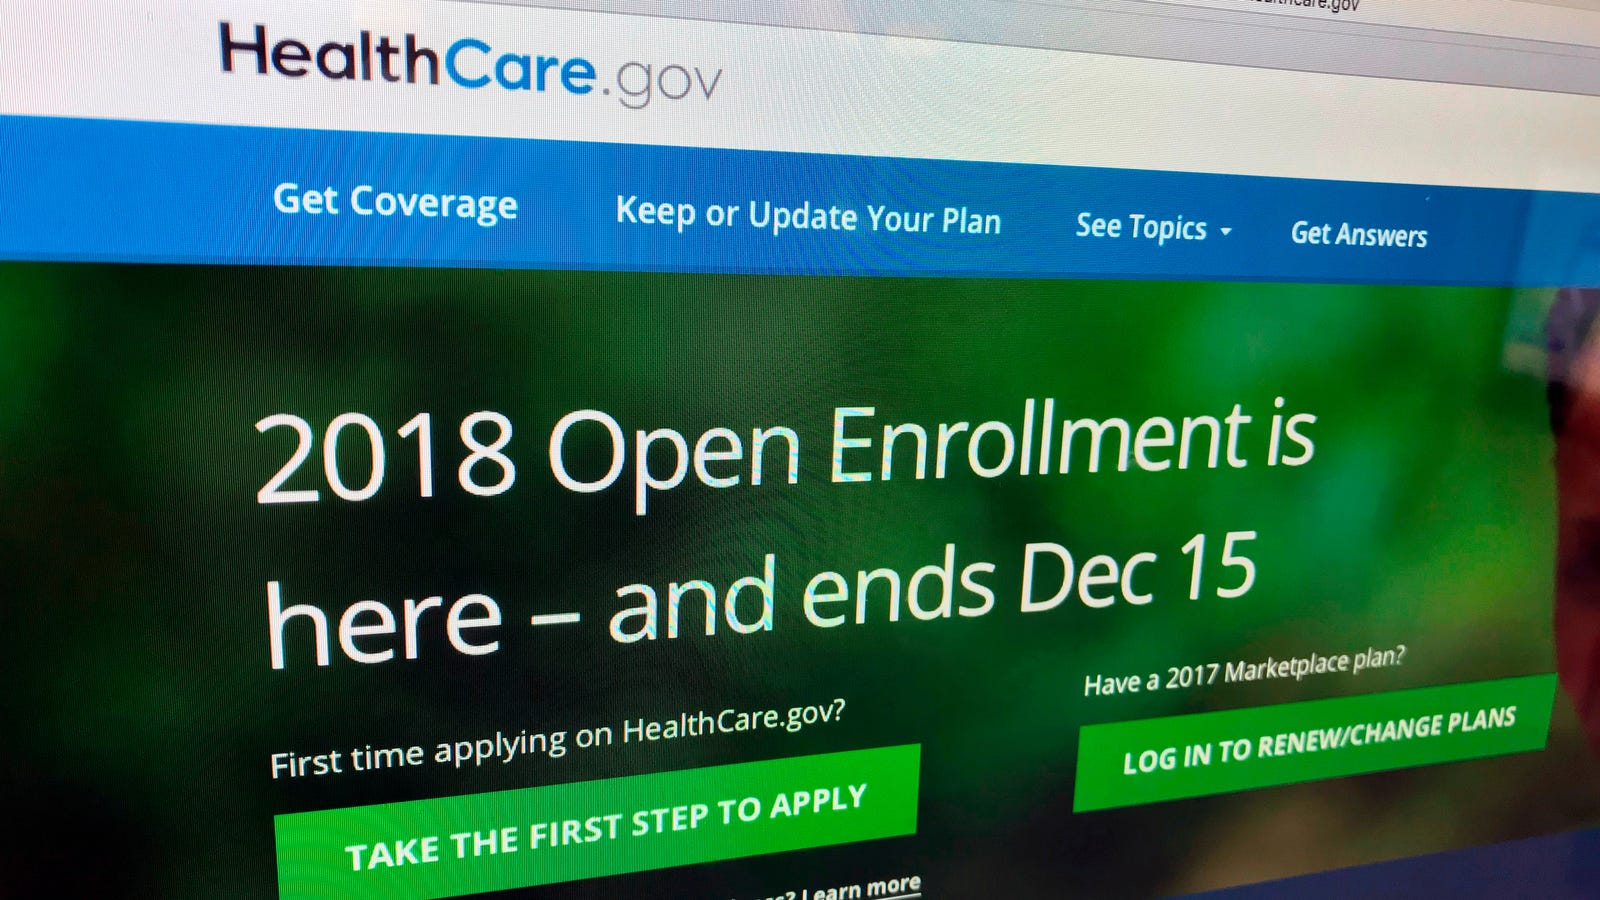 HealthCare.gov Portal Suffers Data Breach, Trump Officials Say